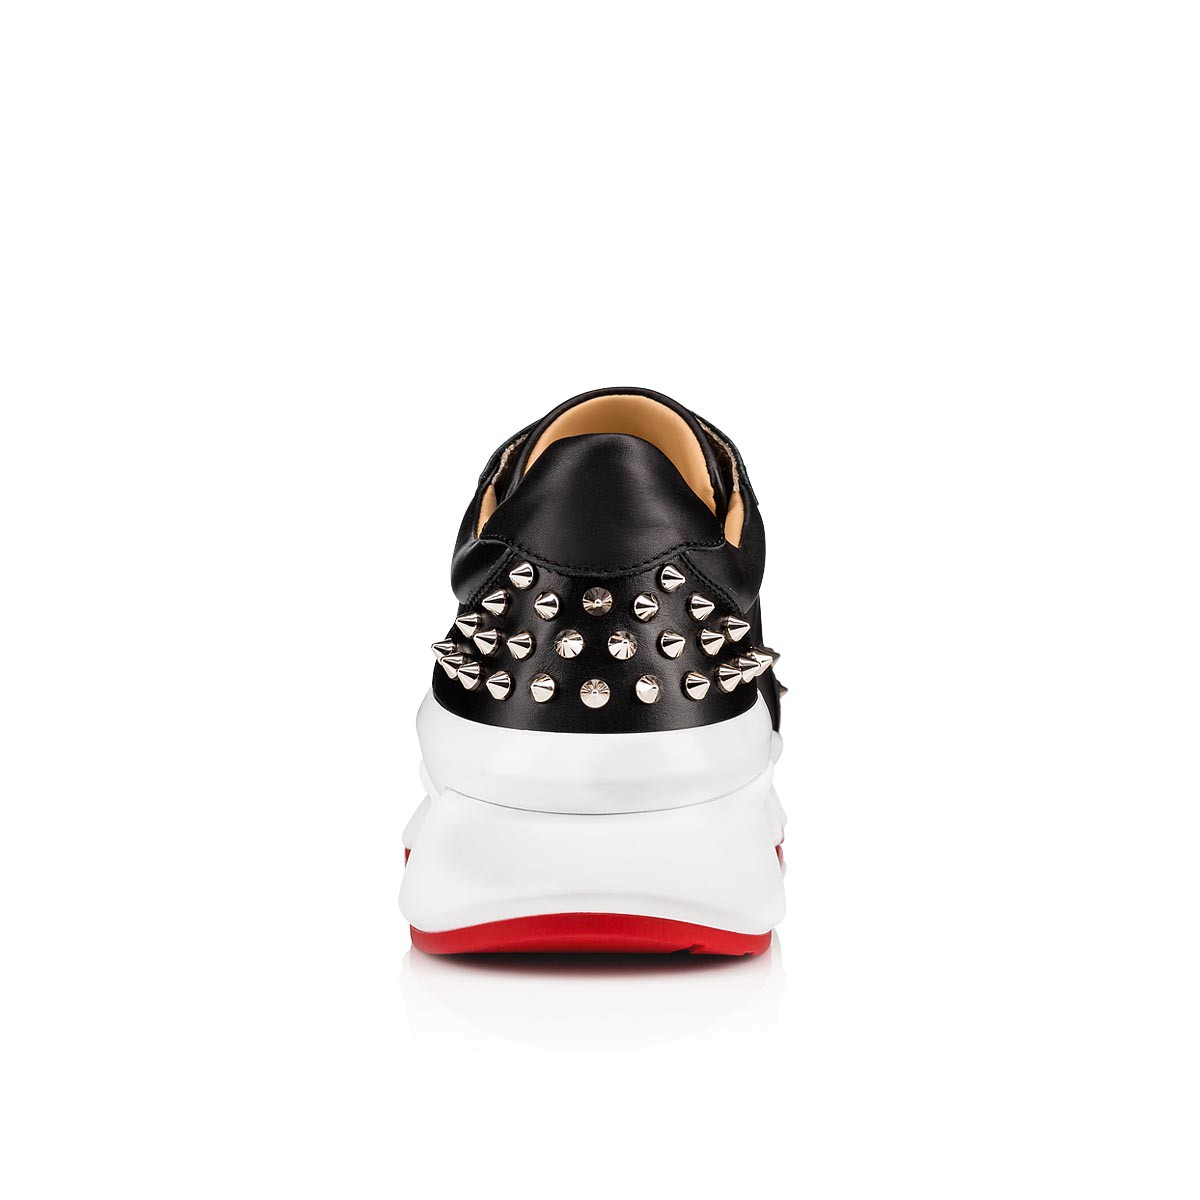 Shoes - Vrs 2018 Flat - Christian Louboutin